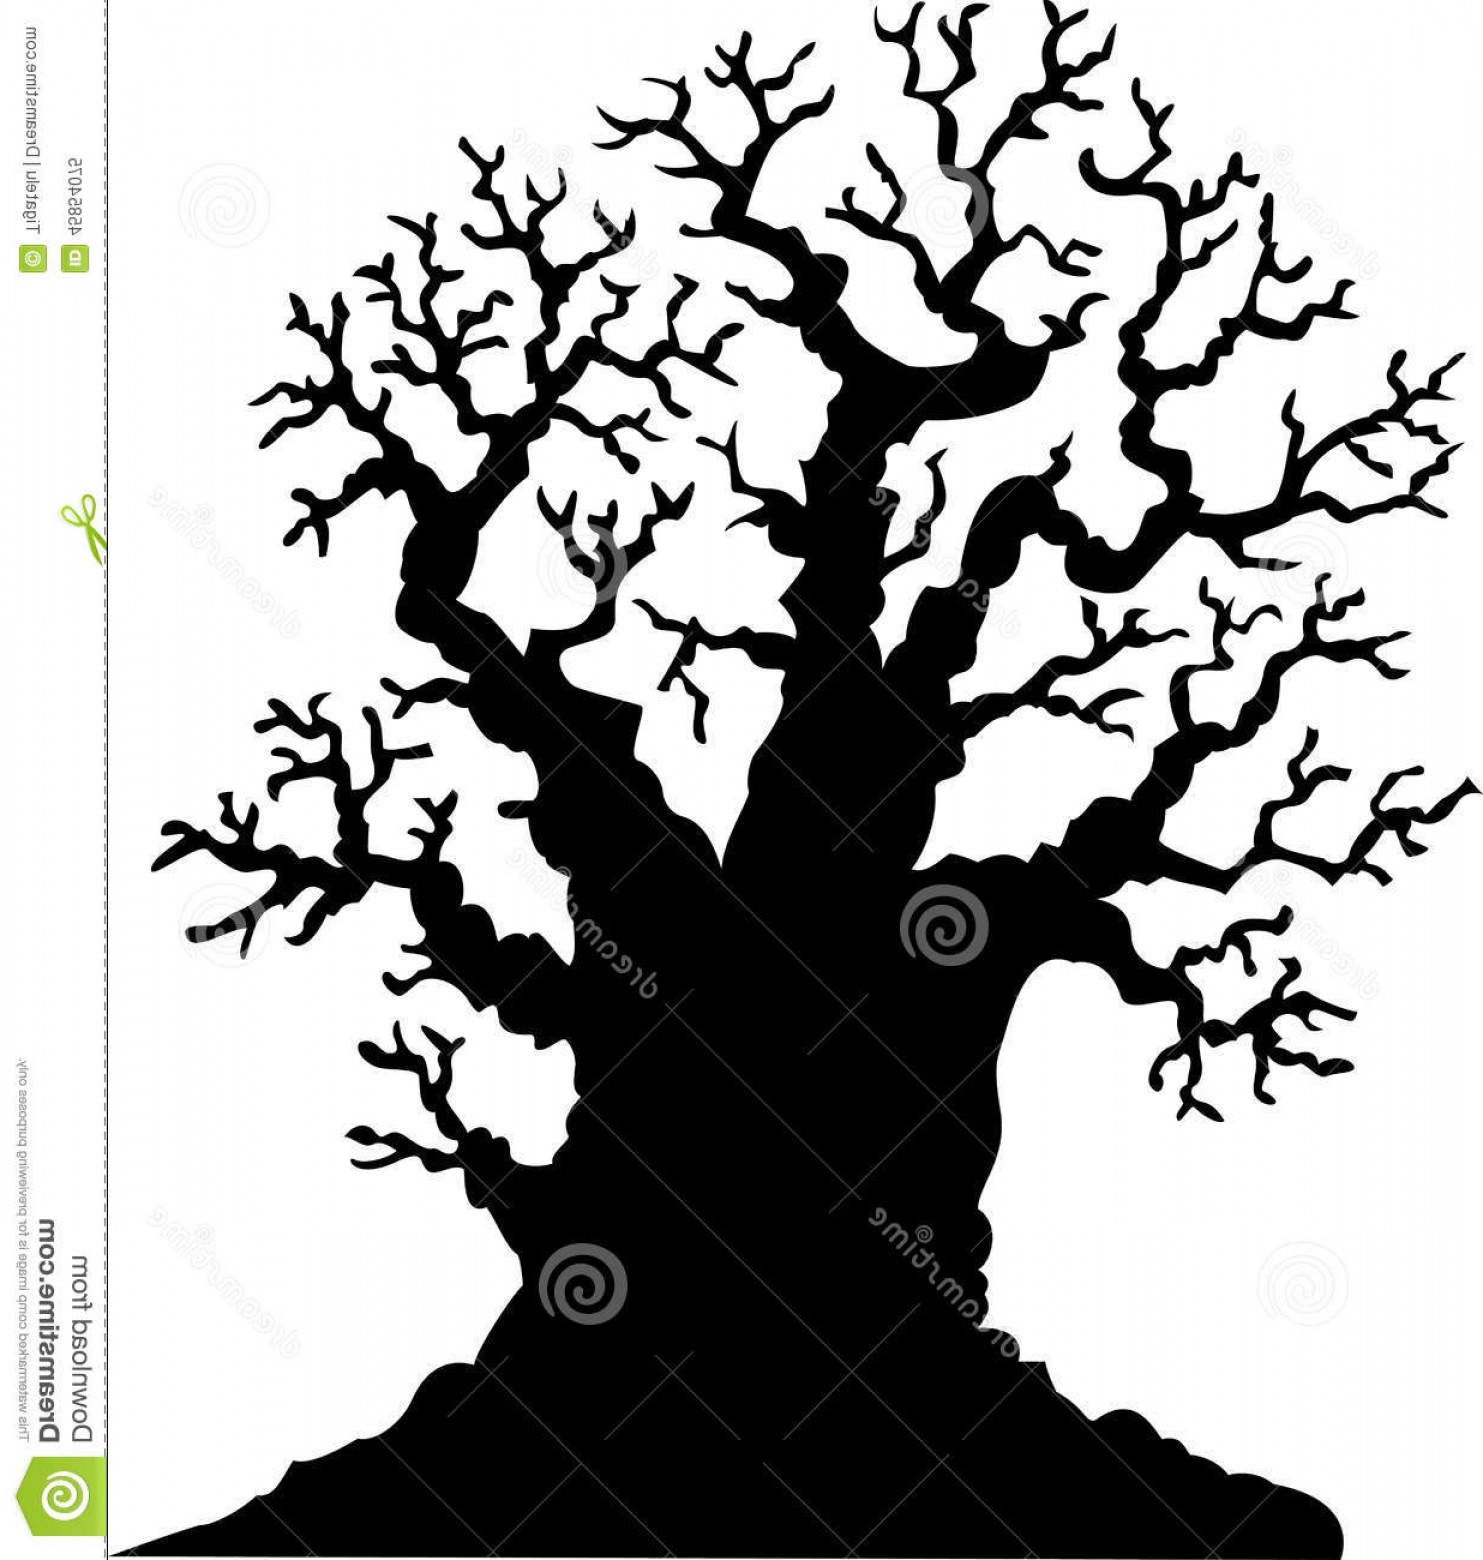 1483x1560 Stock Illustration Silhouette Leafless Oak Tree Cartoon